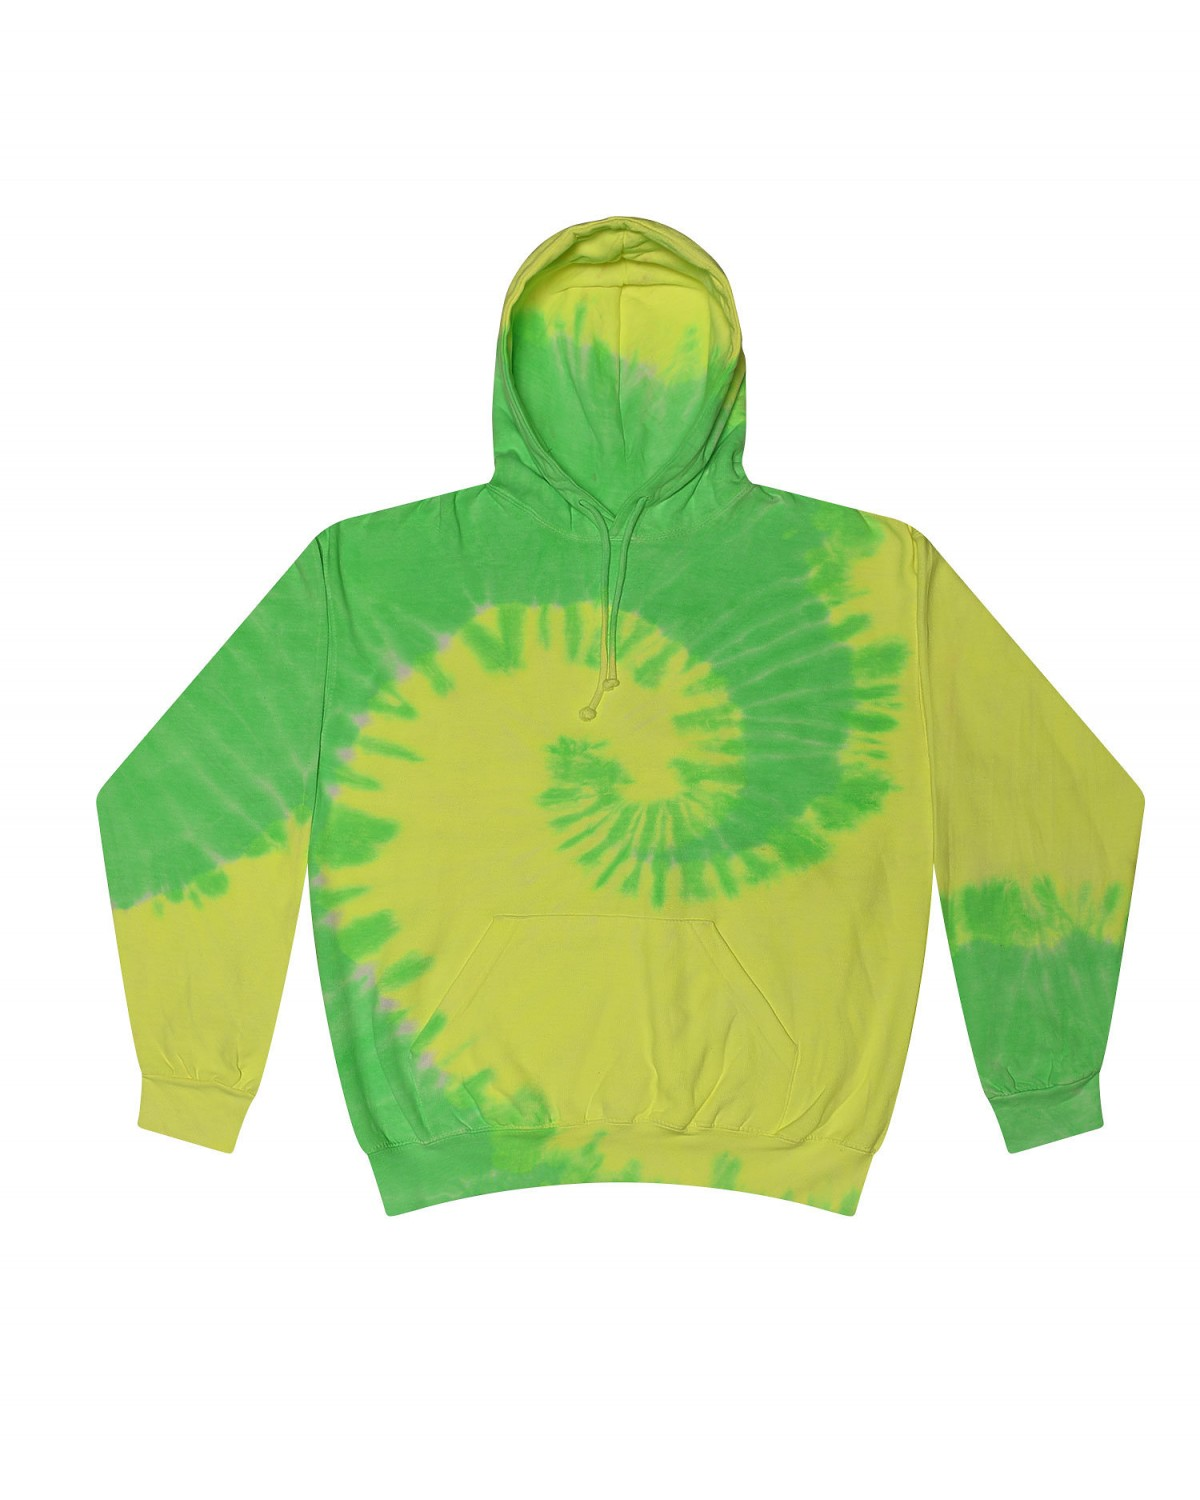 T8777Y Colortone FLO YELLOW/LIME